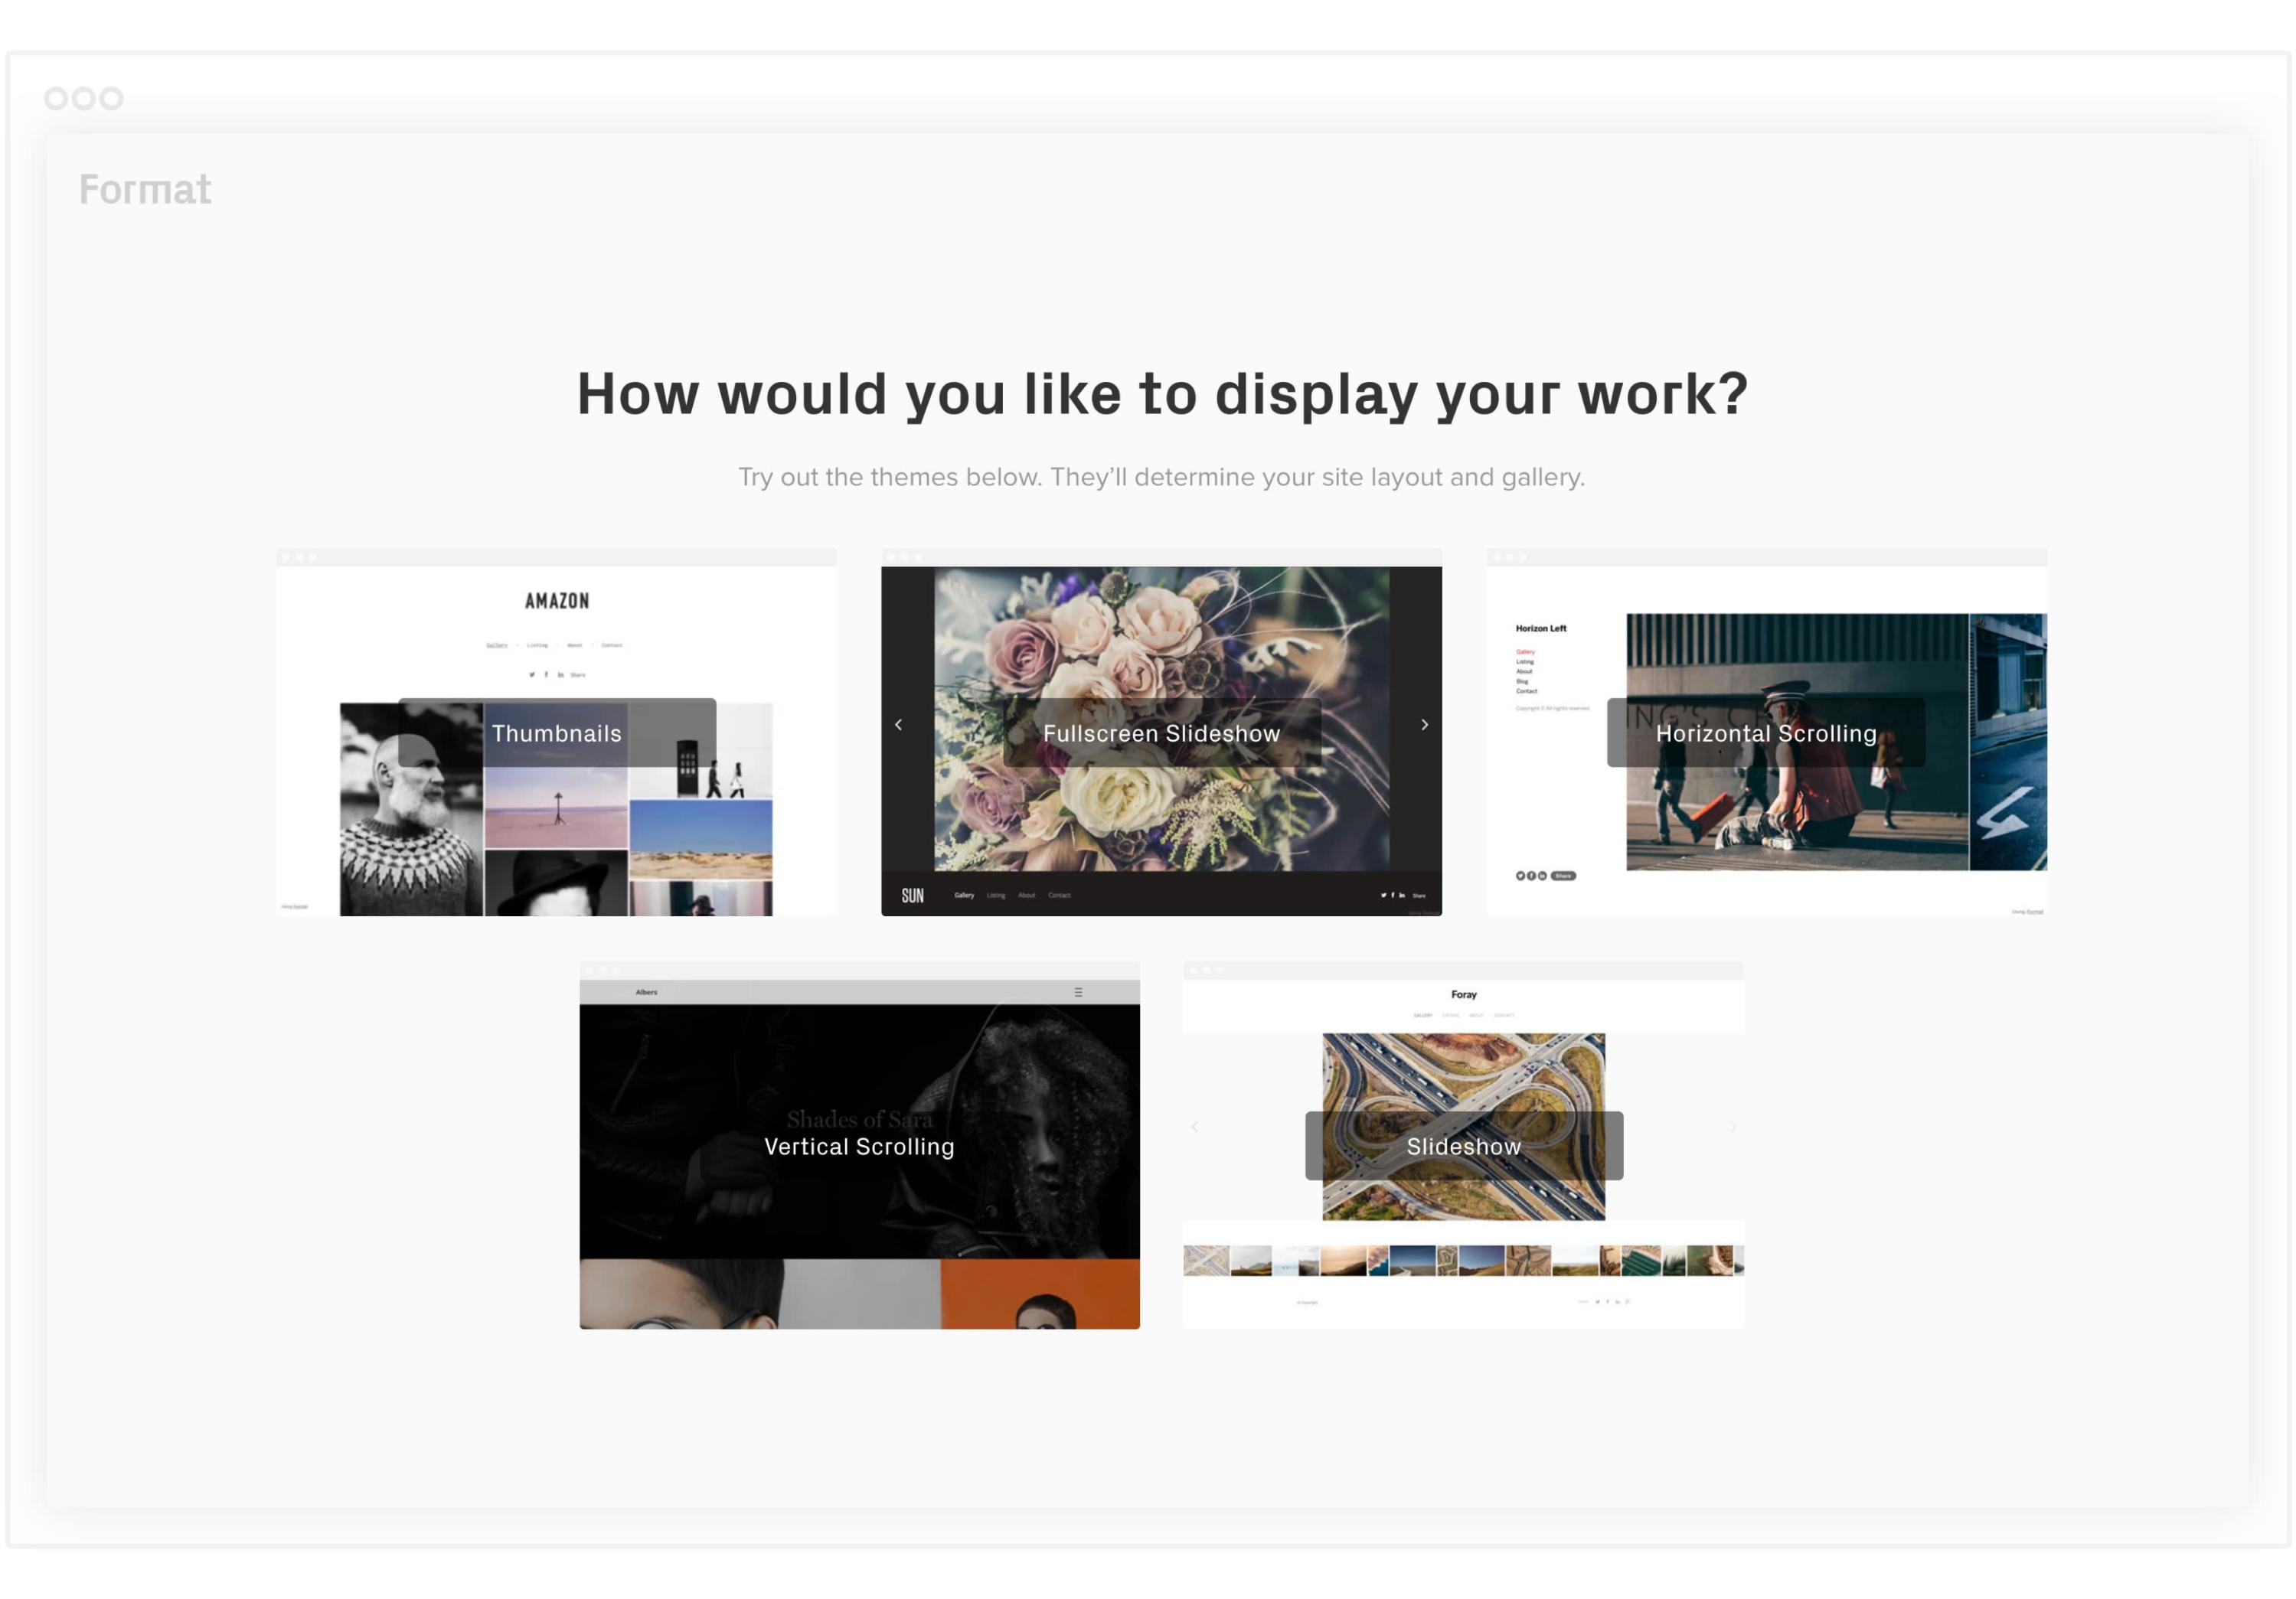 ed9e10ff3 The first choice you'll make when setting up your online portfolio is how  you want your theme to look. No pressure, though—if you decide later that  you ...